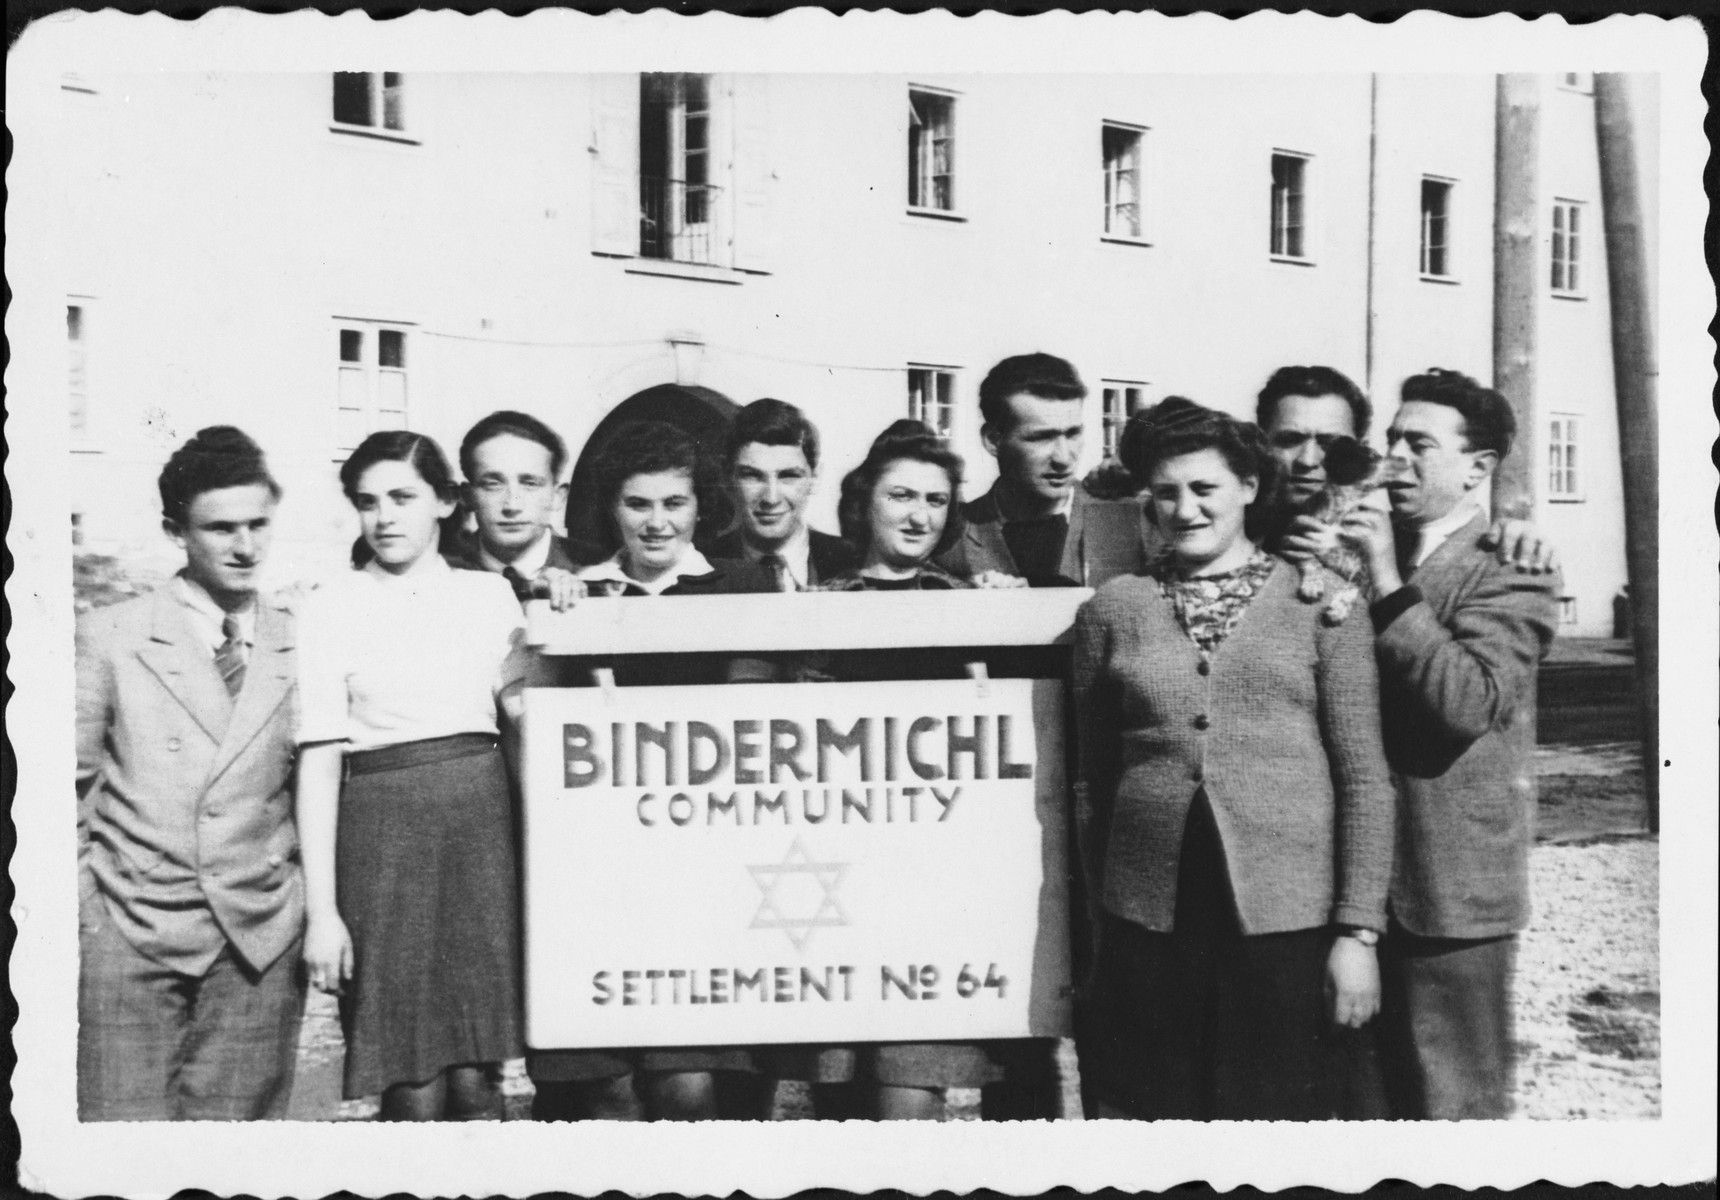 A group of Jewish displaced persons stands next to a sign outside the Bindermichl camp in Linz, Austria.